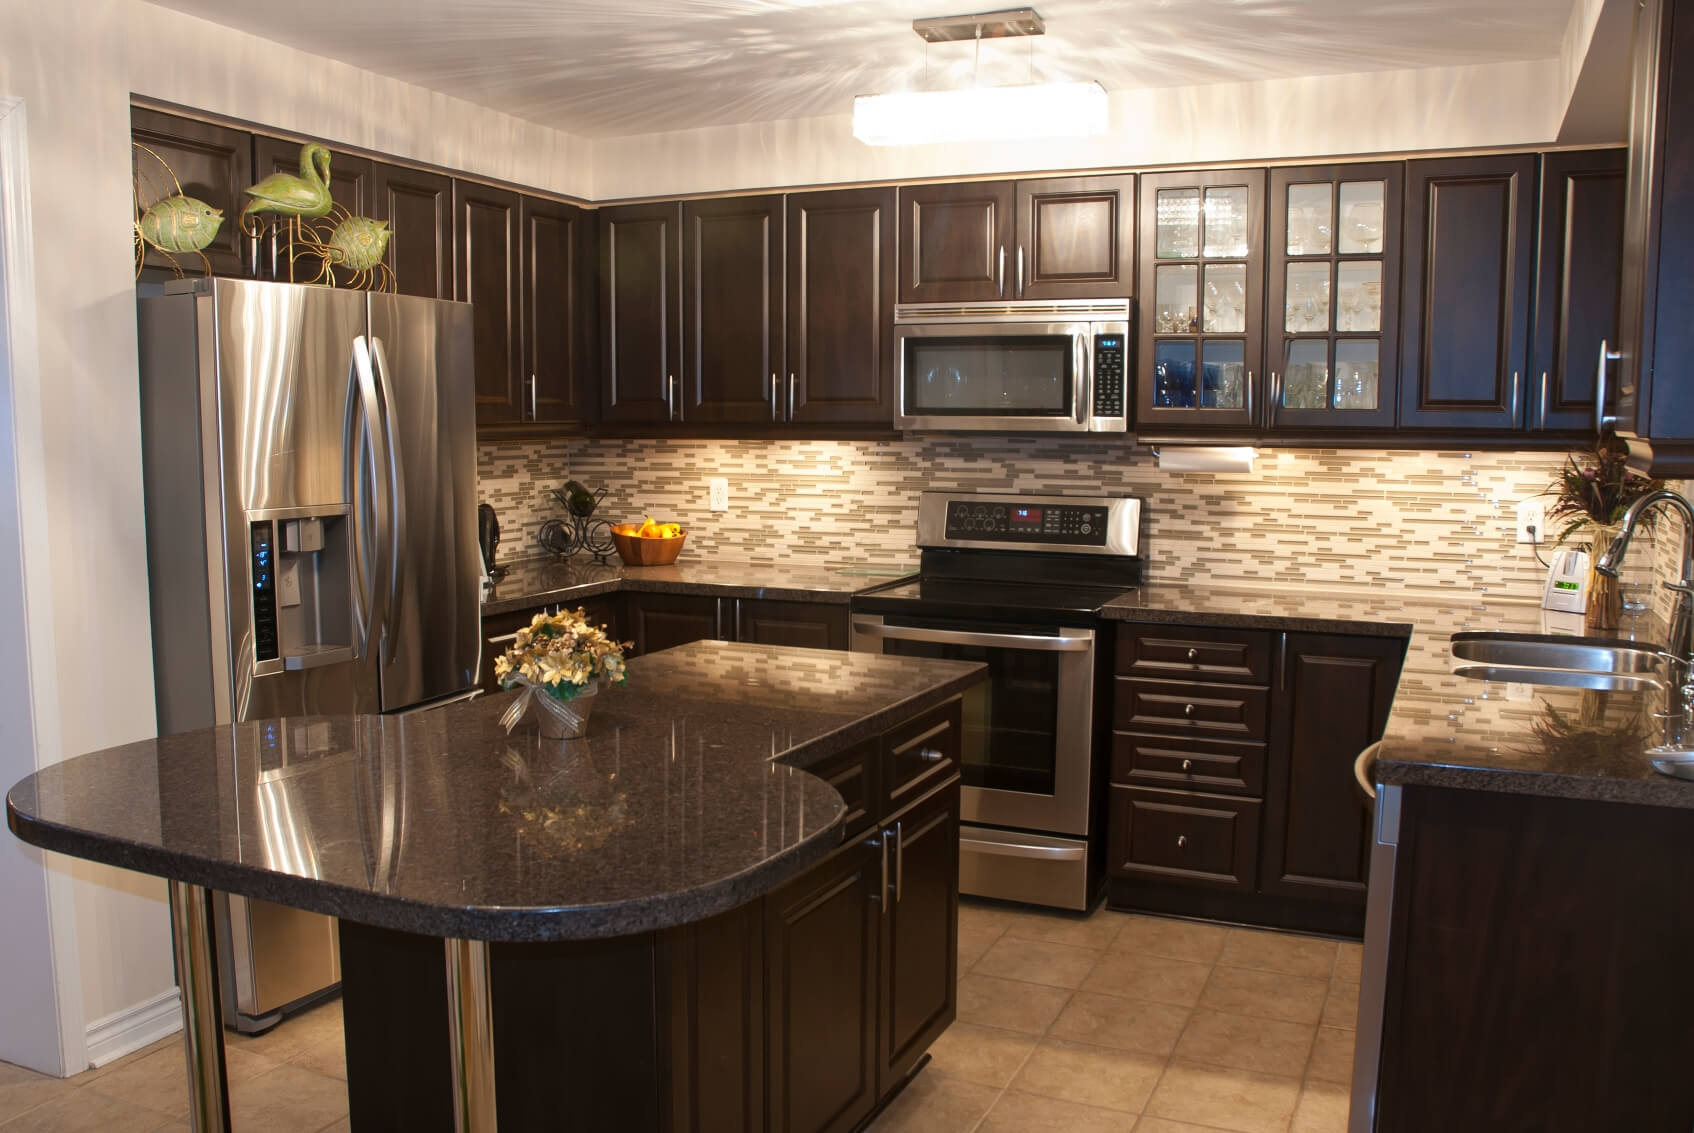 Kitchen Countertops Dark Cabinets52 dark kitchens with dark wood and black kitchen cabinets